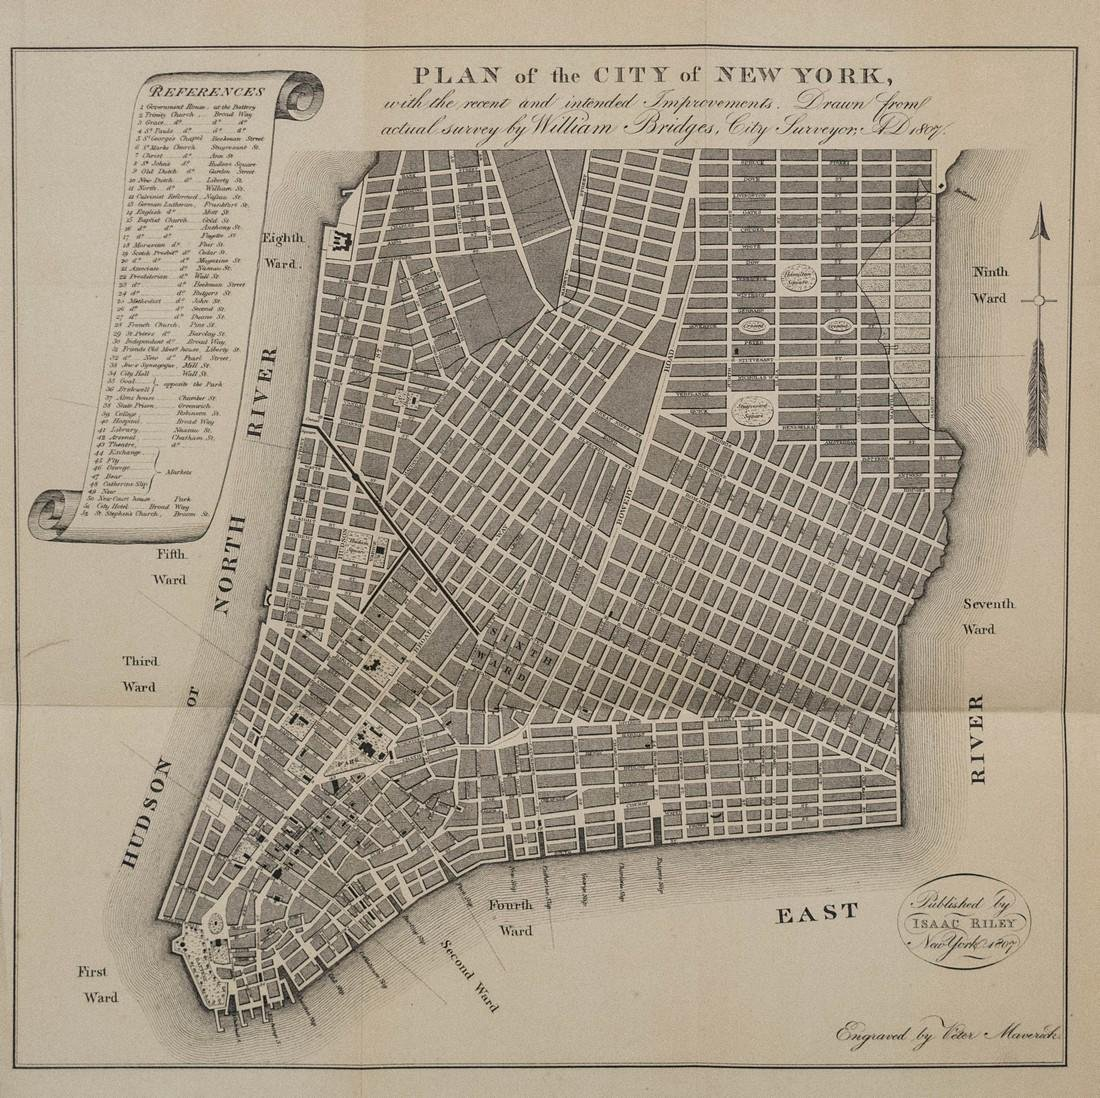 Bridges: Antique Plan for New York City, 1870